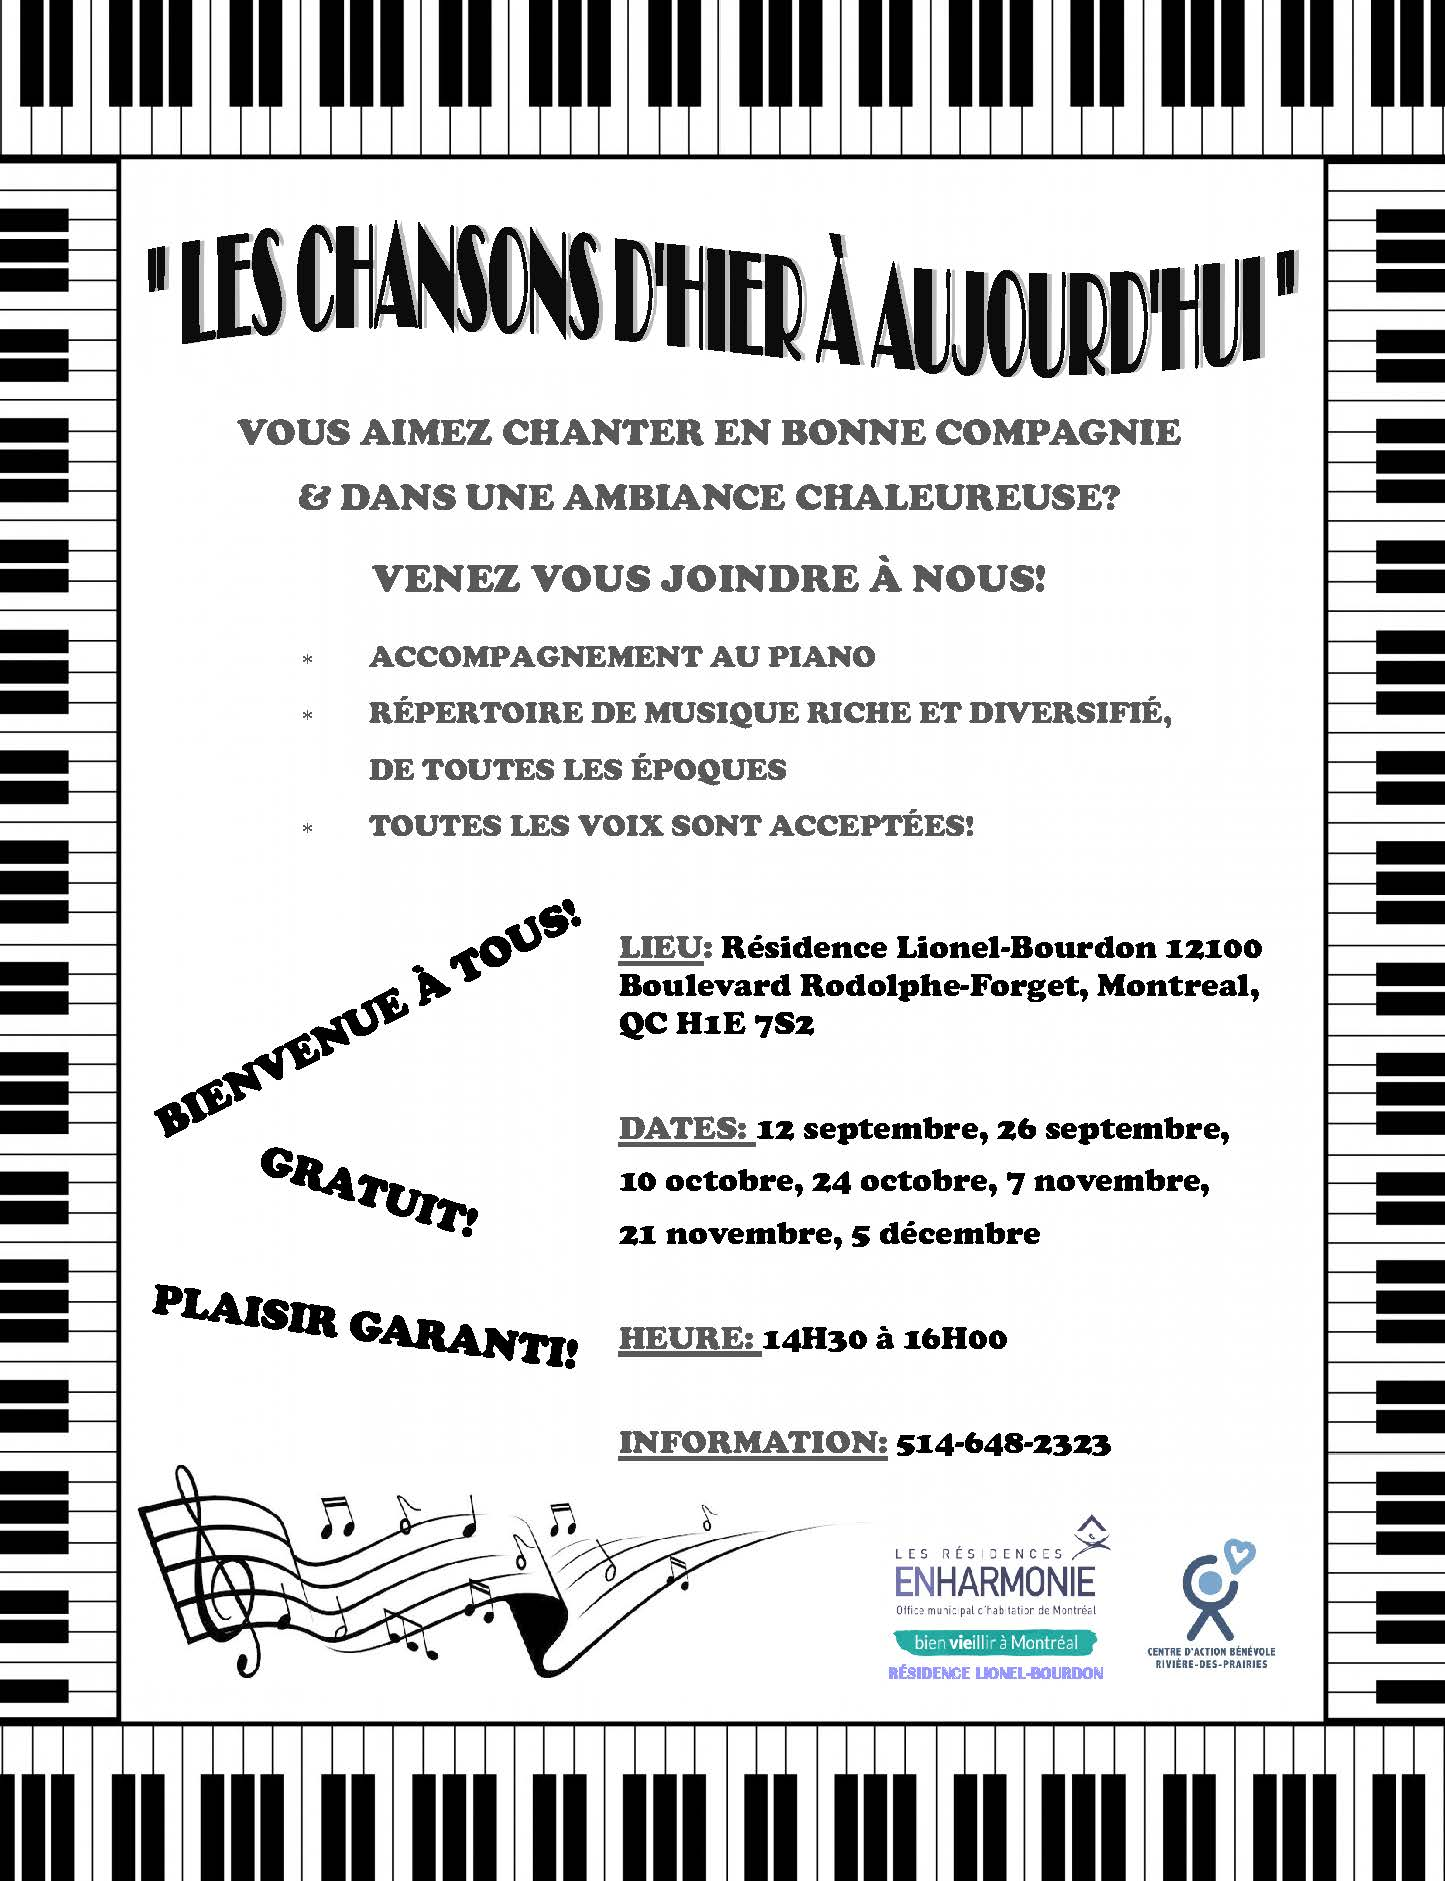 Flyer Chansons dhier a aujd